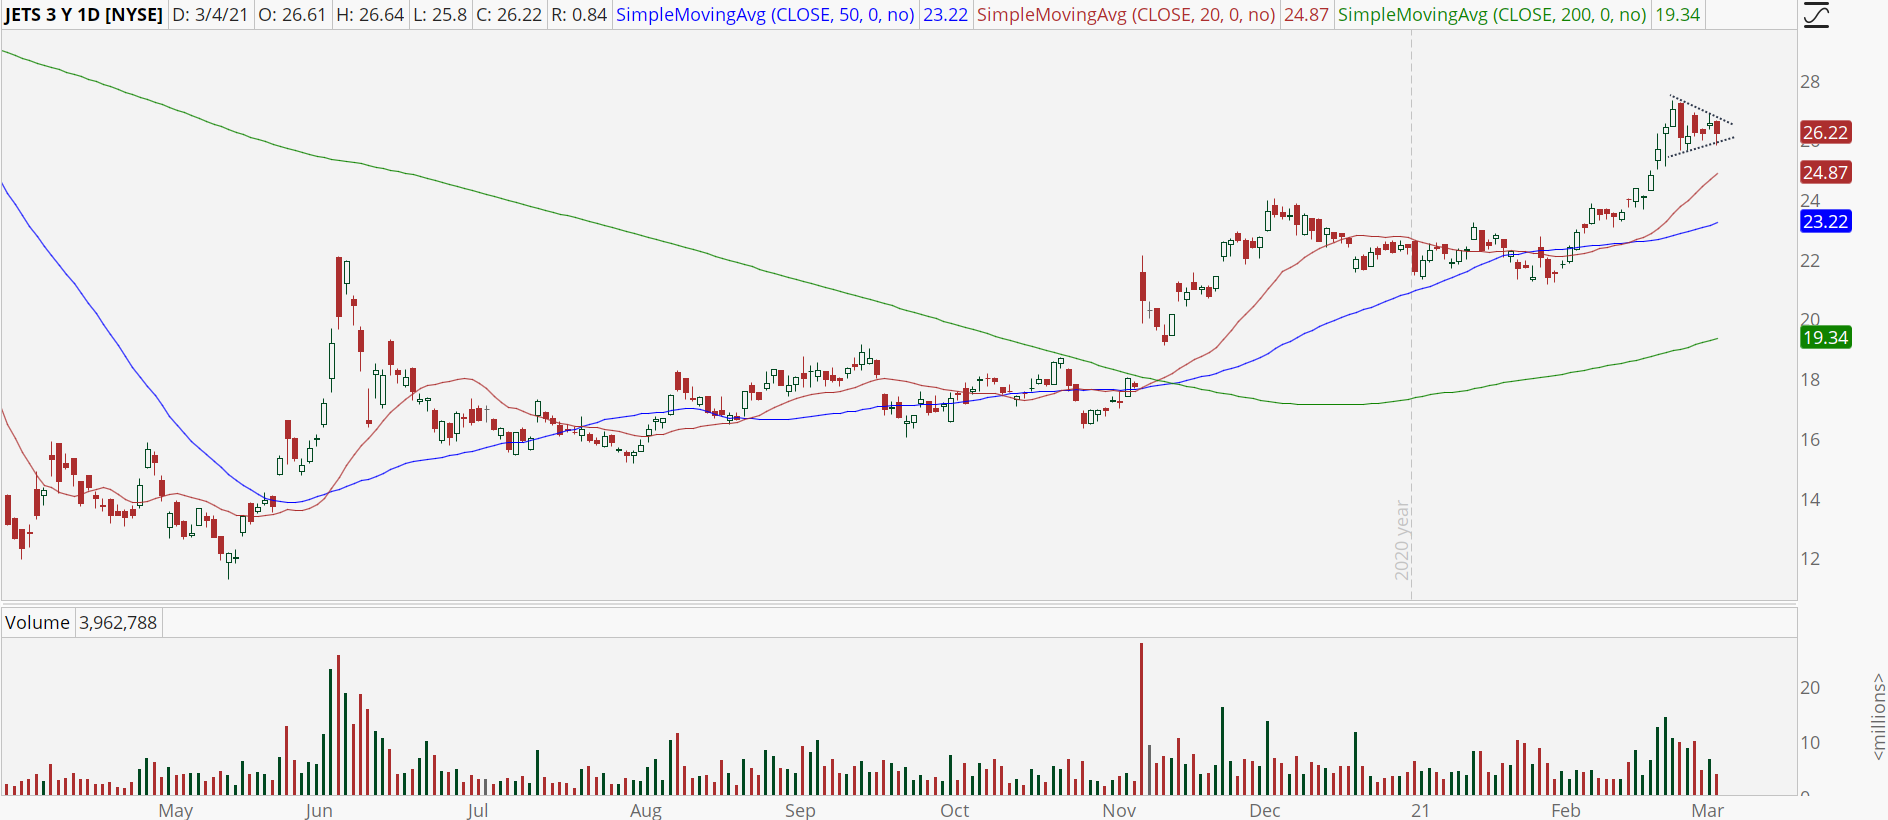 Global Jets ETF (JETS) chart with bull pennant